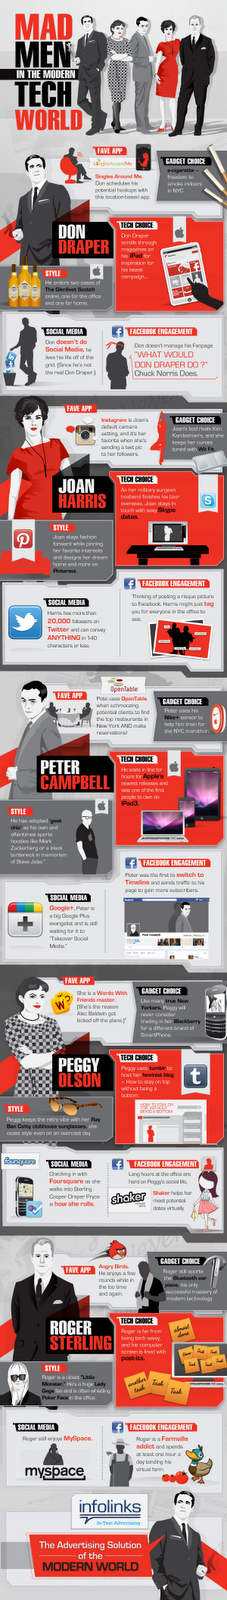 Mad Men Enters into Tech World Infographic